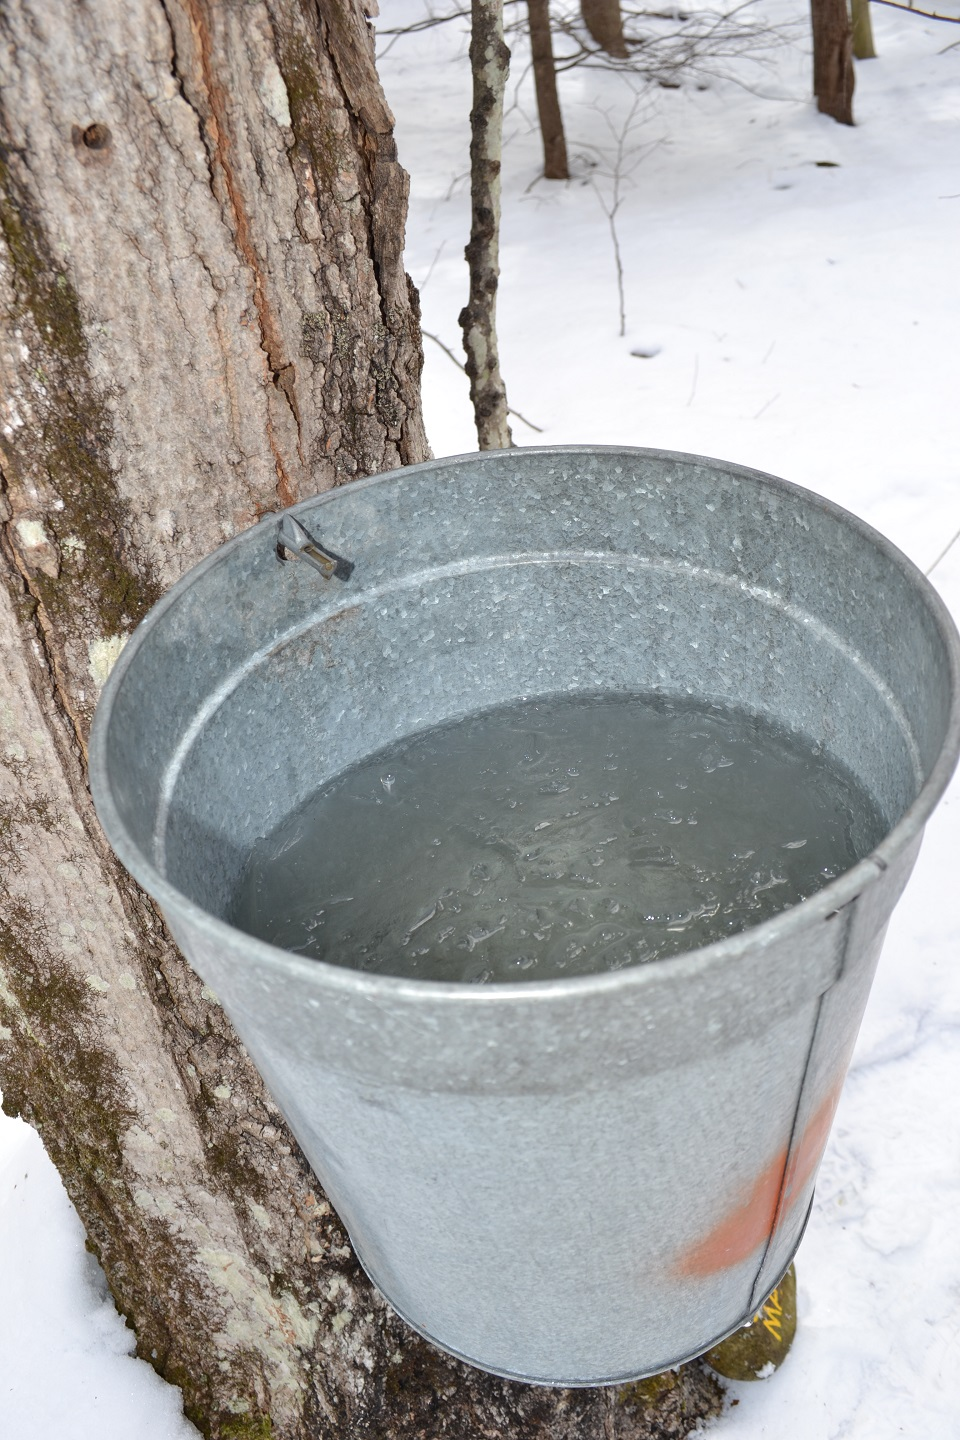 Sugar maple full of sap at Up Yonda